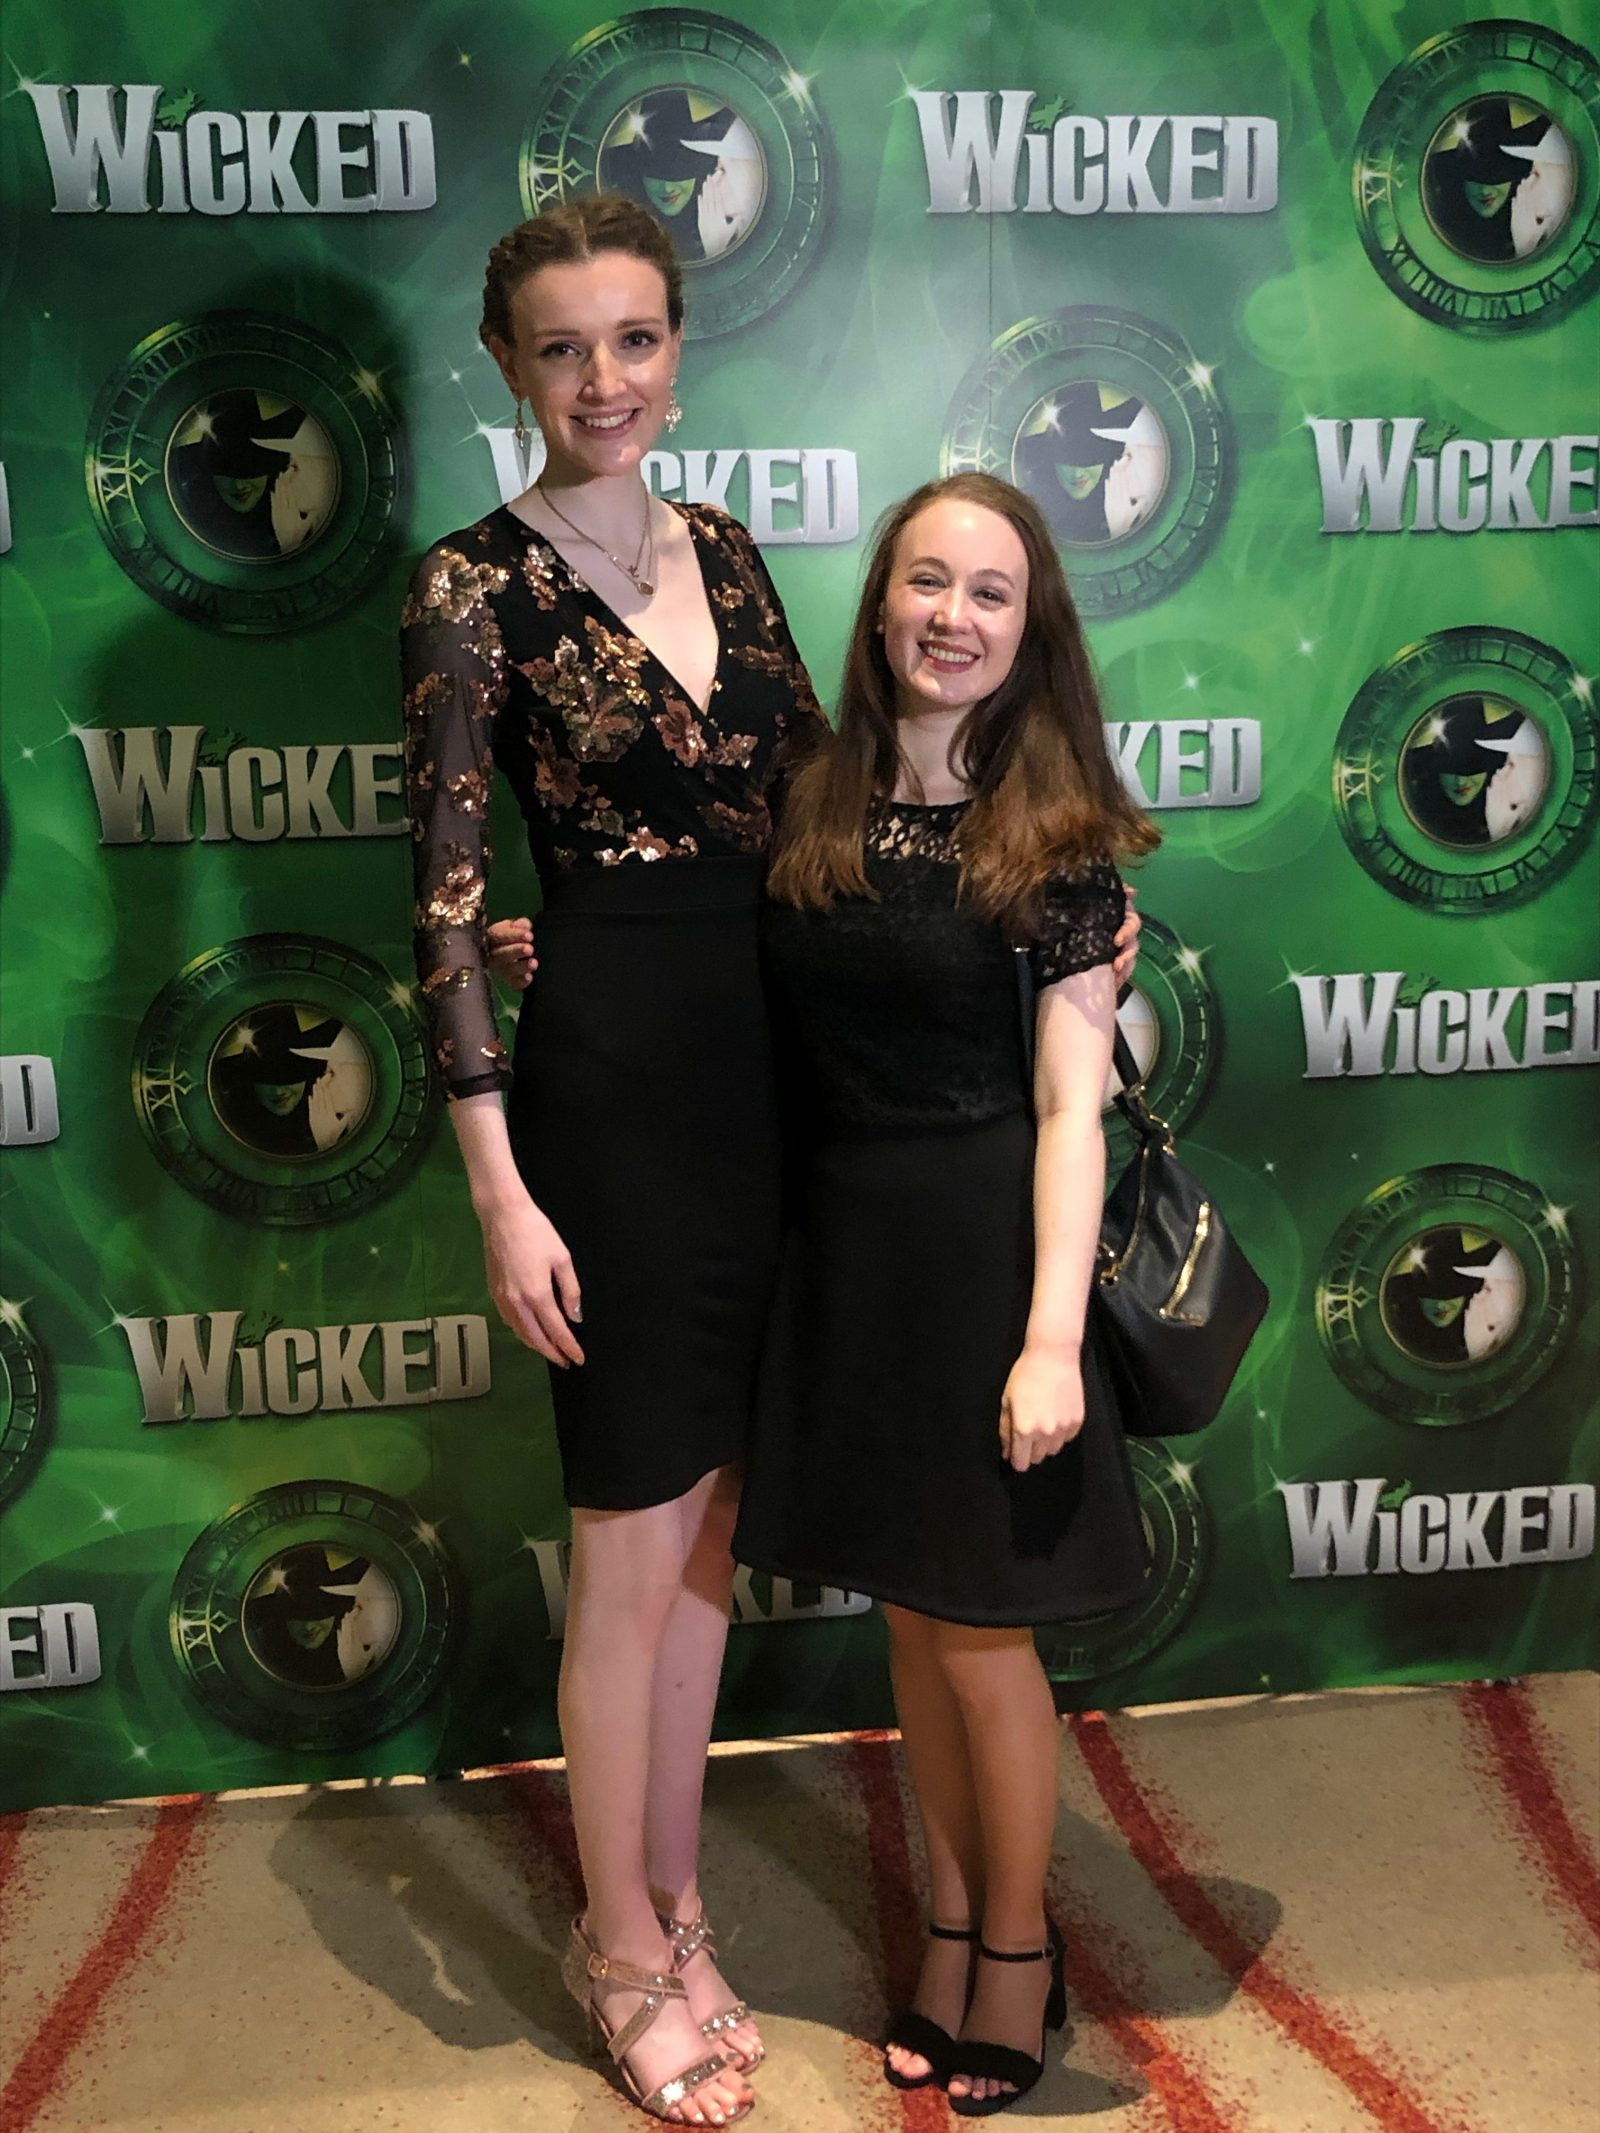 kate and pippa stood in front of official wicked photo backdrop